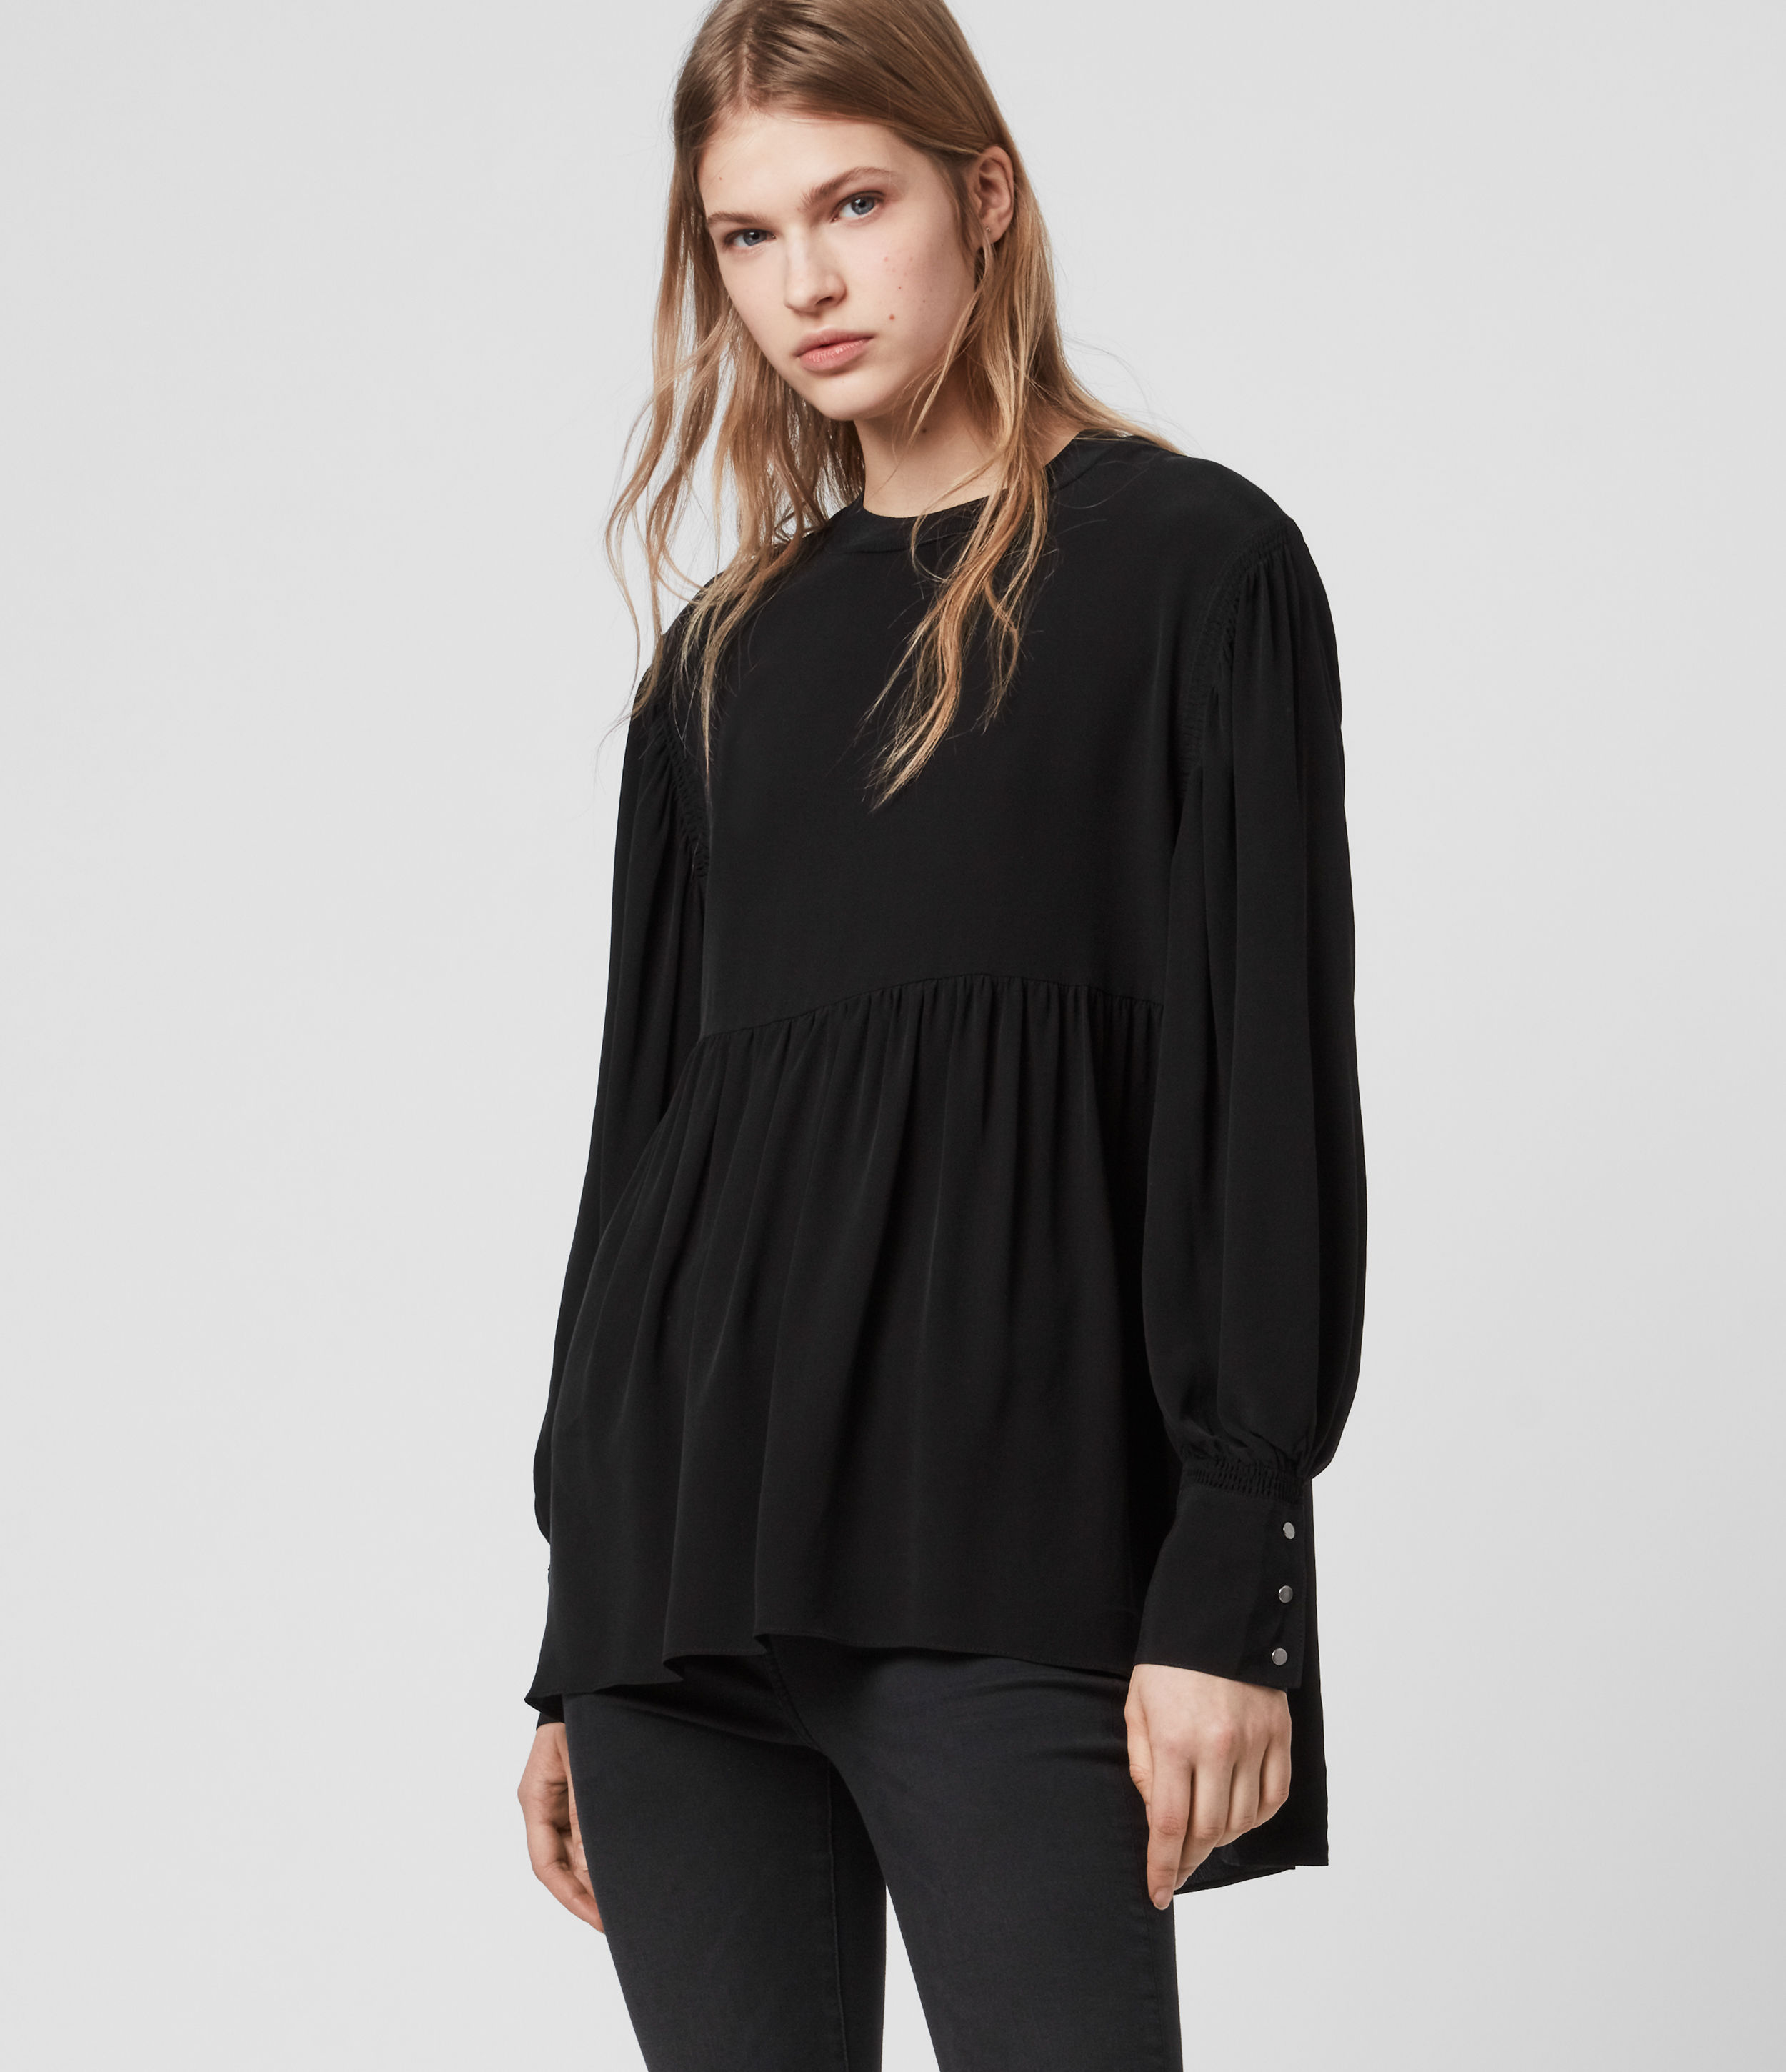 AllSaints Women's Relaxed Fit Fayre Top, Black, Size: XS